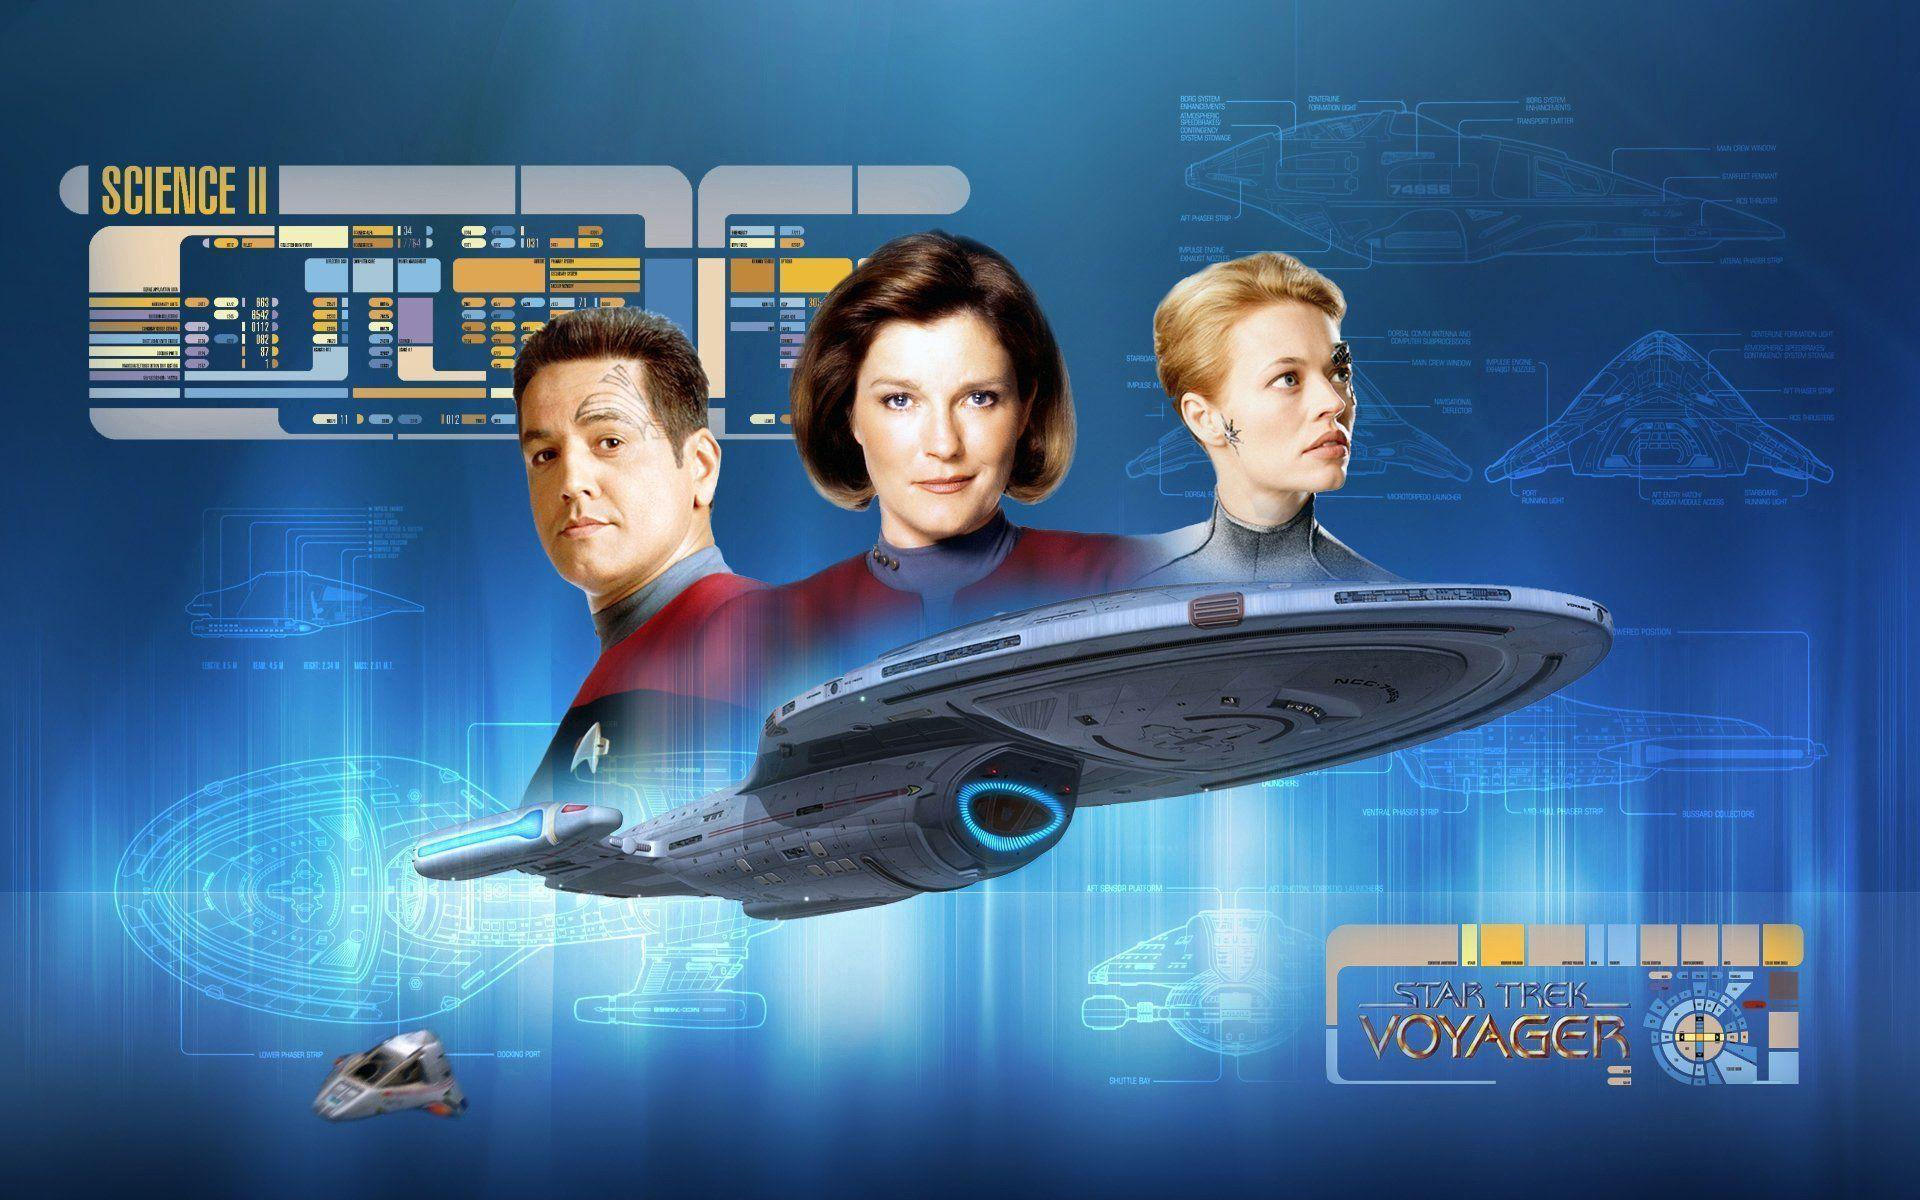 Star Trek Voyager Crew Wallpapers